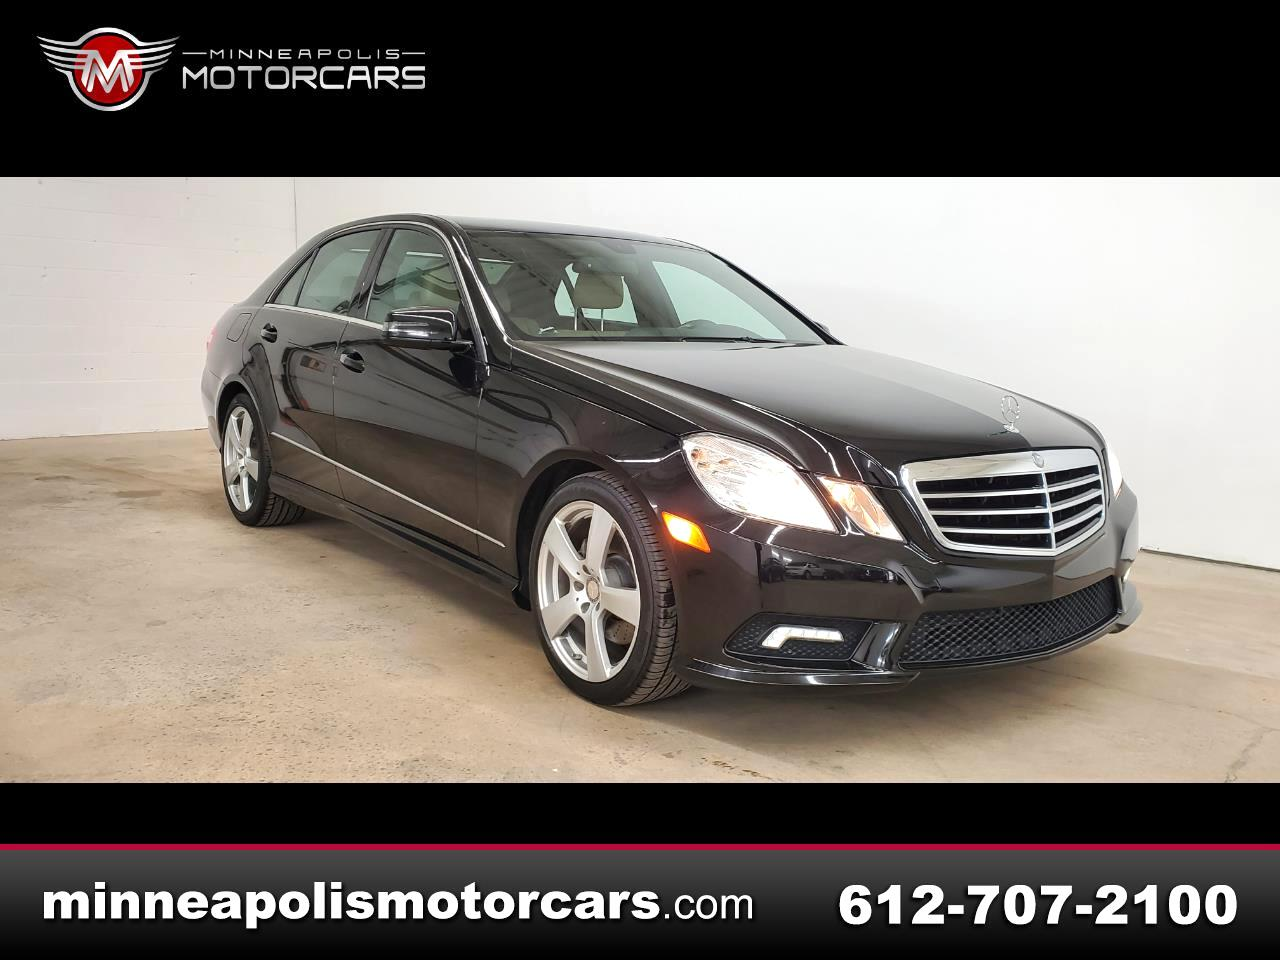 Mercedes-Benz E-Class E350 Luxury 4MATIC Sedan 2011